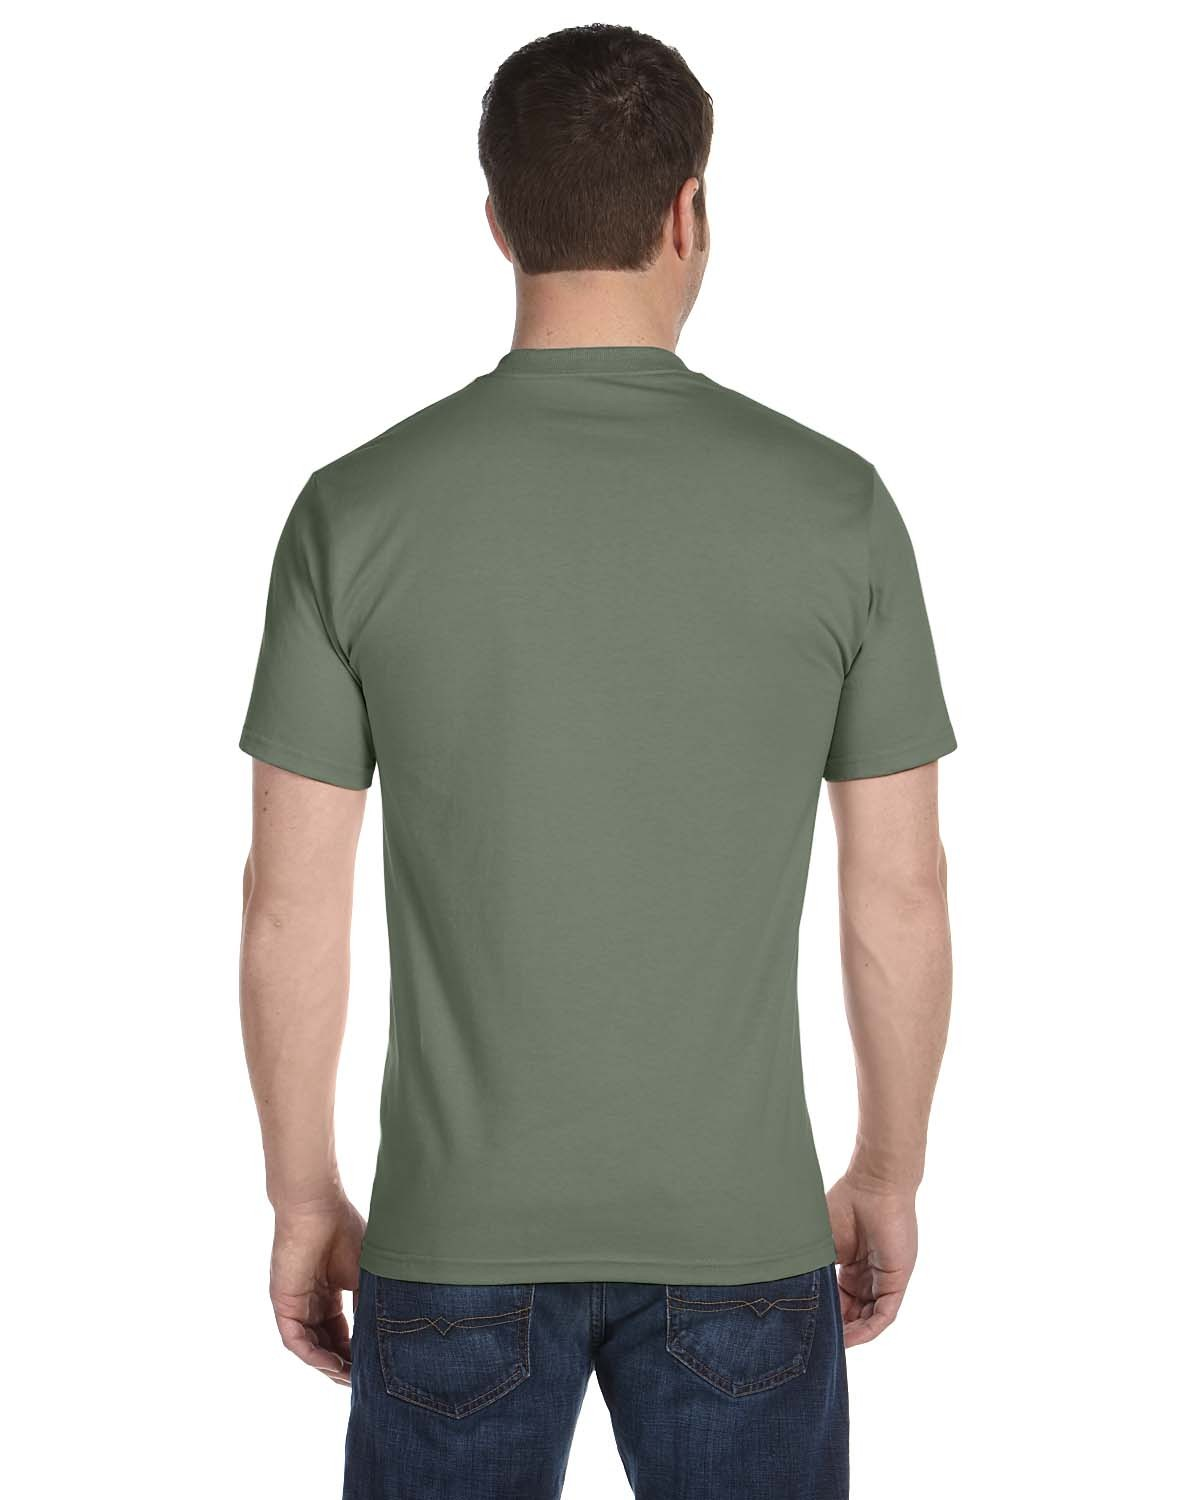 5180 Hanes FATIGUE GREEN